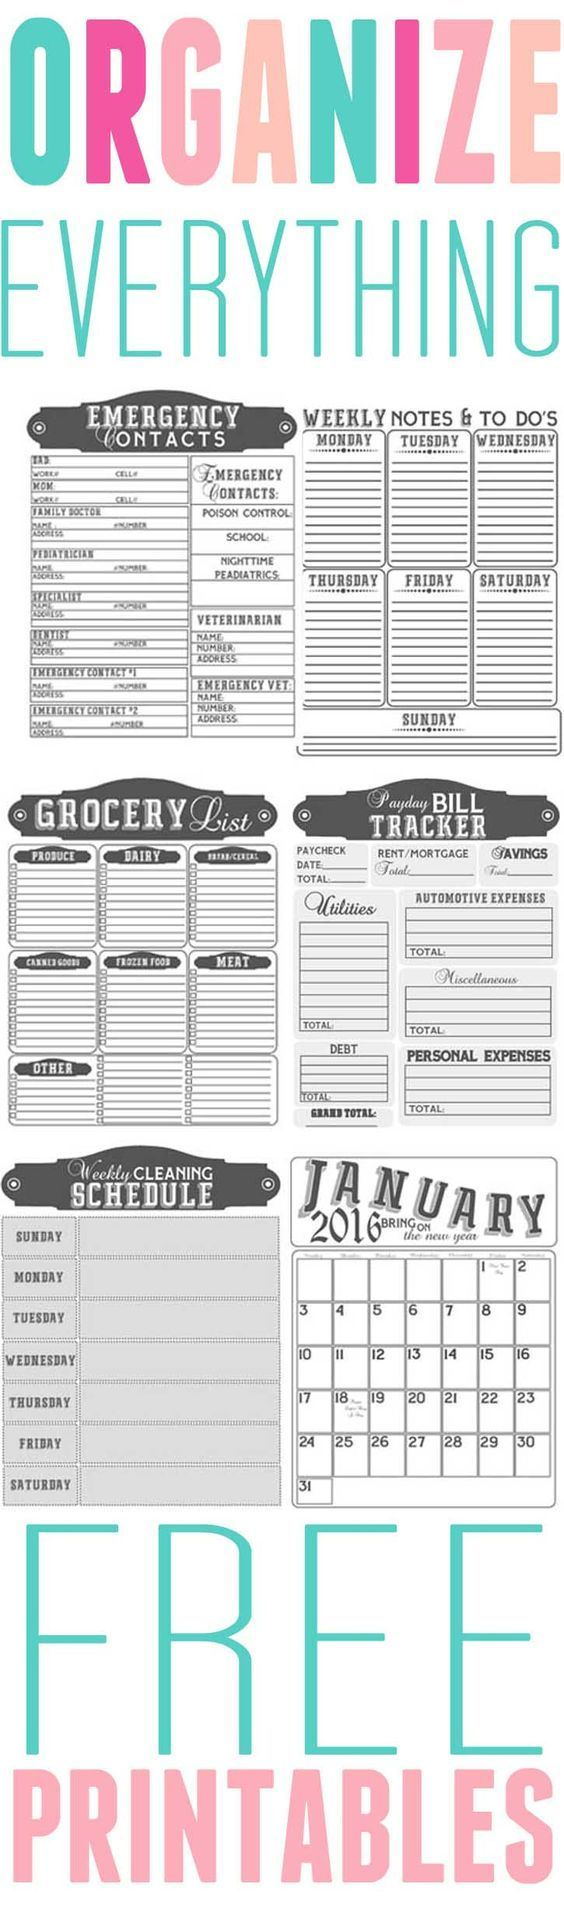 Get Organized- Free printables to organize your home in 2016 ...